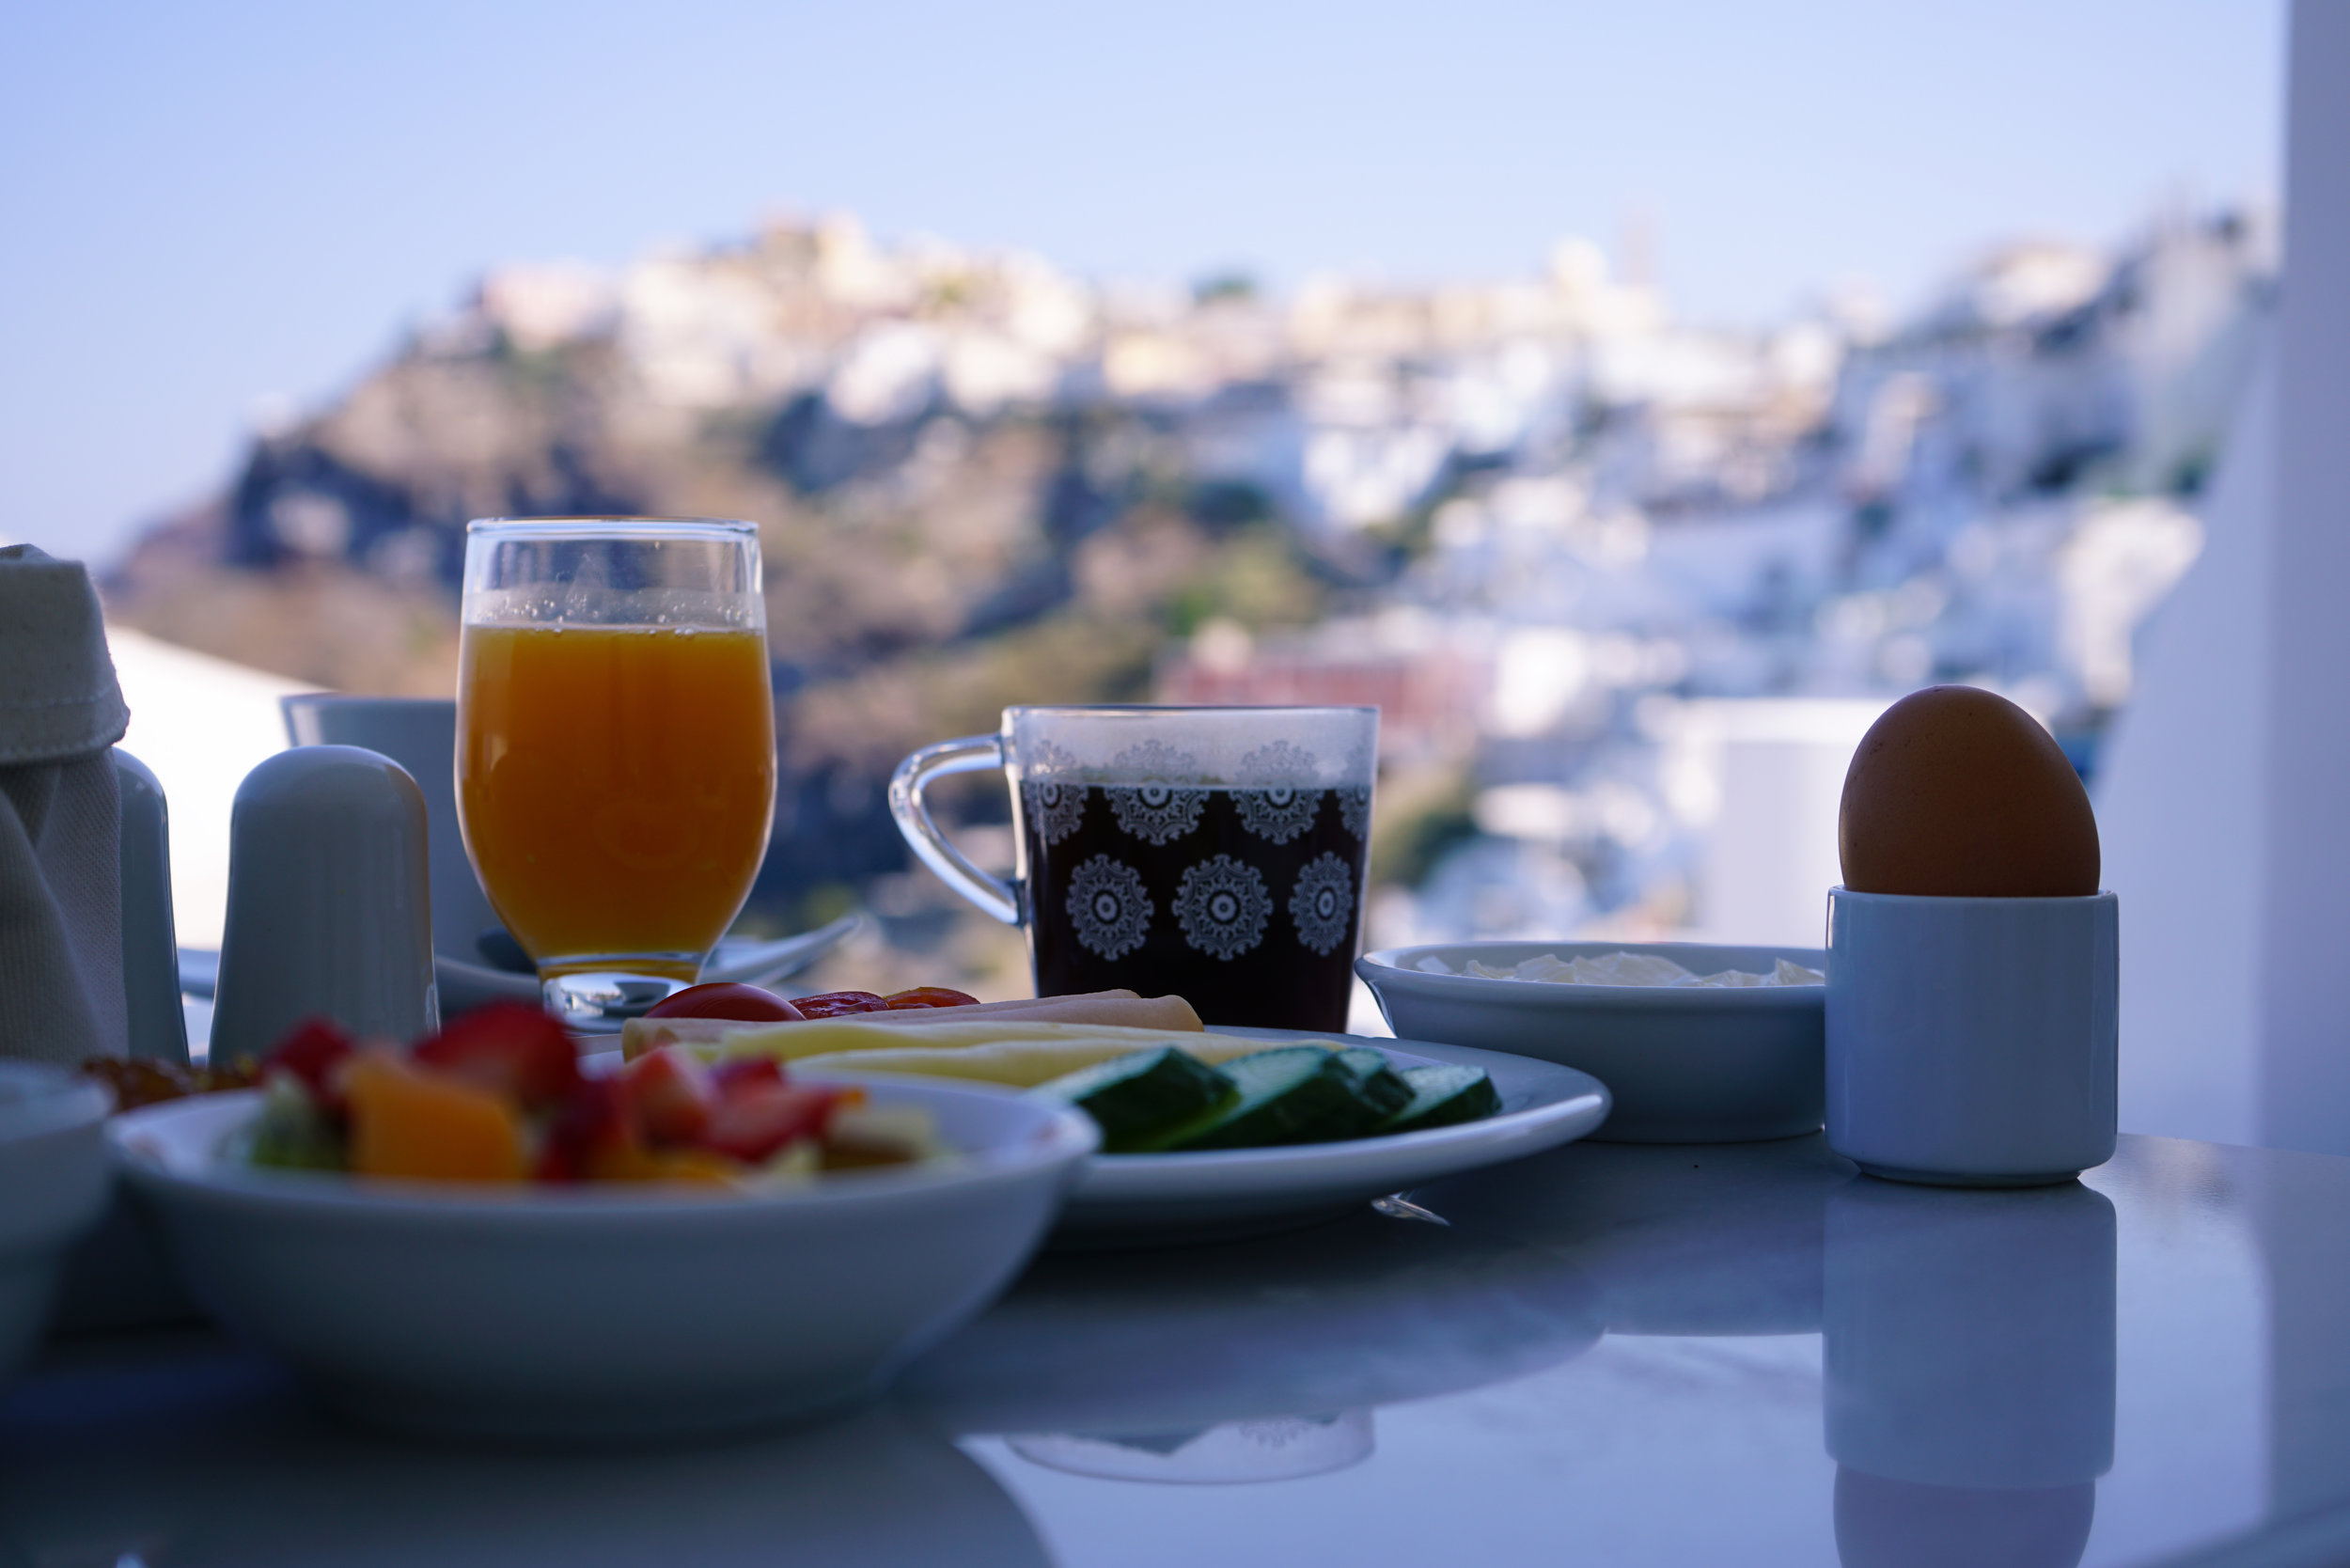 Breakfast via balcony with a view!